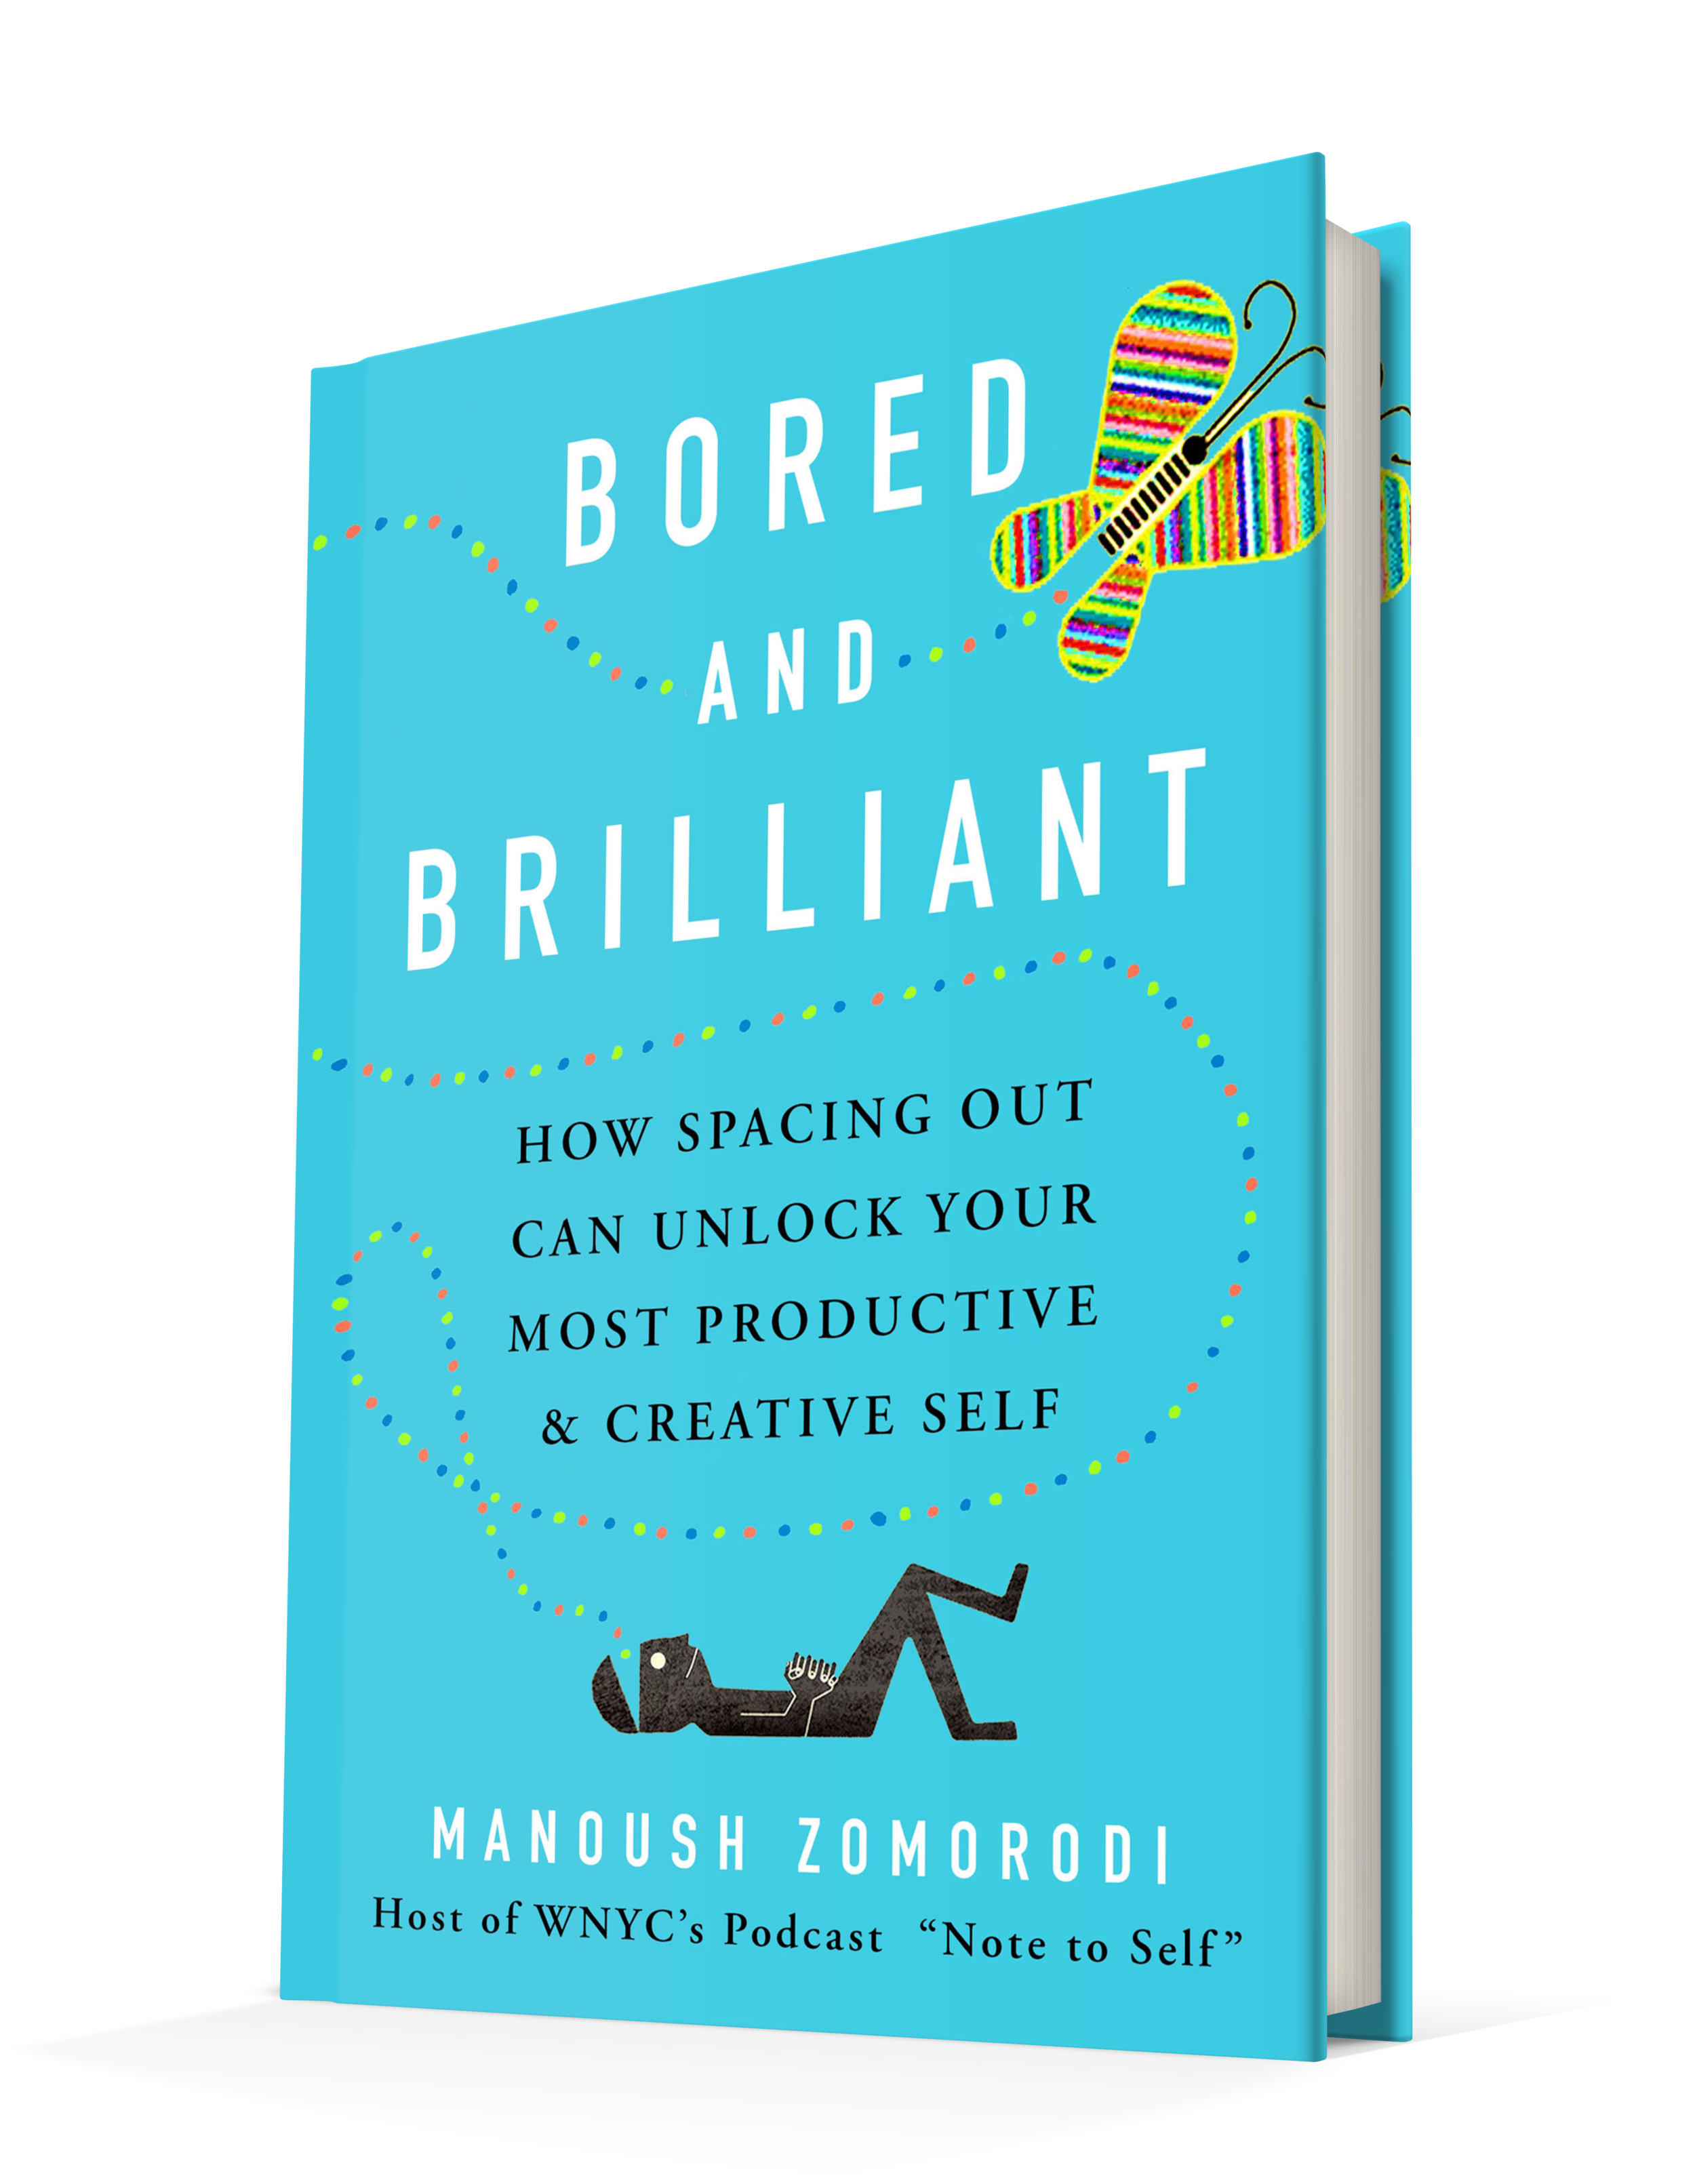 - Has your smartphone become your BFF? Do you feel bored when you're not checking Facebook or Instagram? Bored and Brilliant: How Spacing Out Can Unlock Your Most Productive and Creative Self explains the connection between boredom and original thinking, and explores how we can harness boredom's hidden benefits to become our most productive selves.